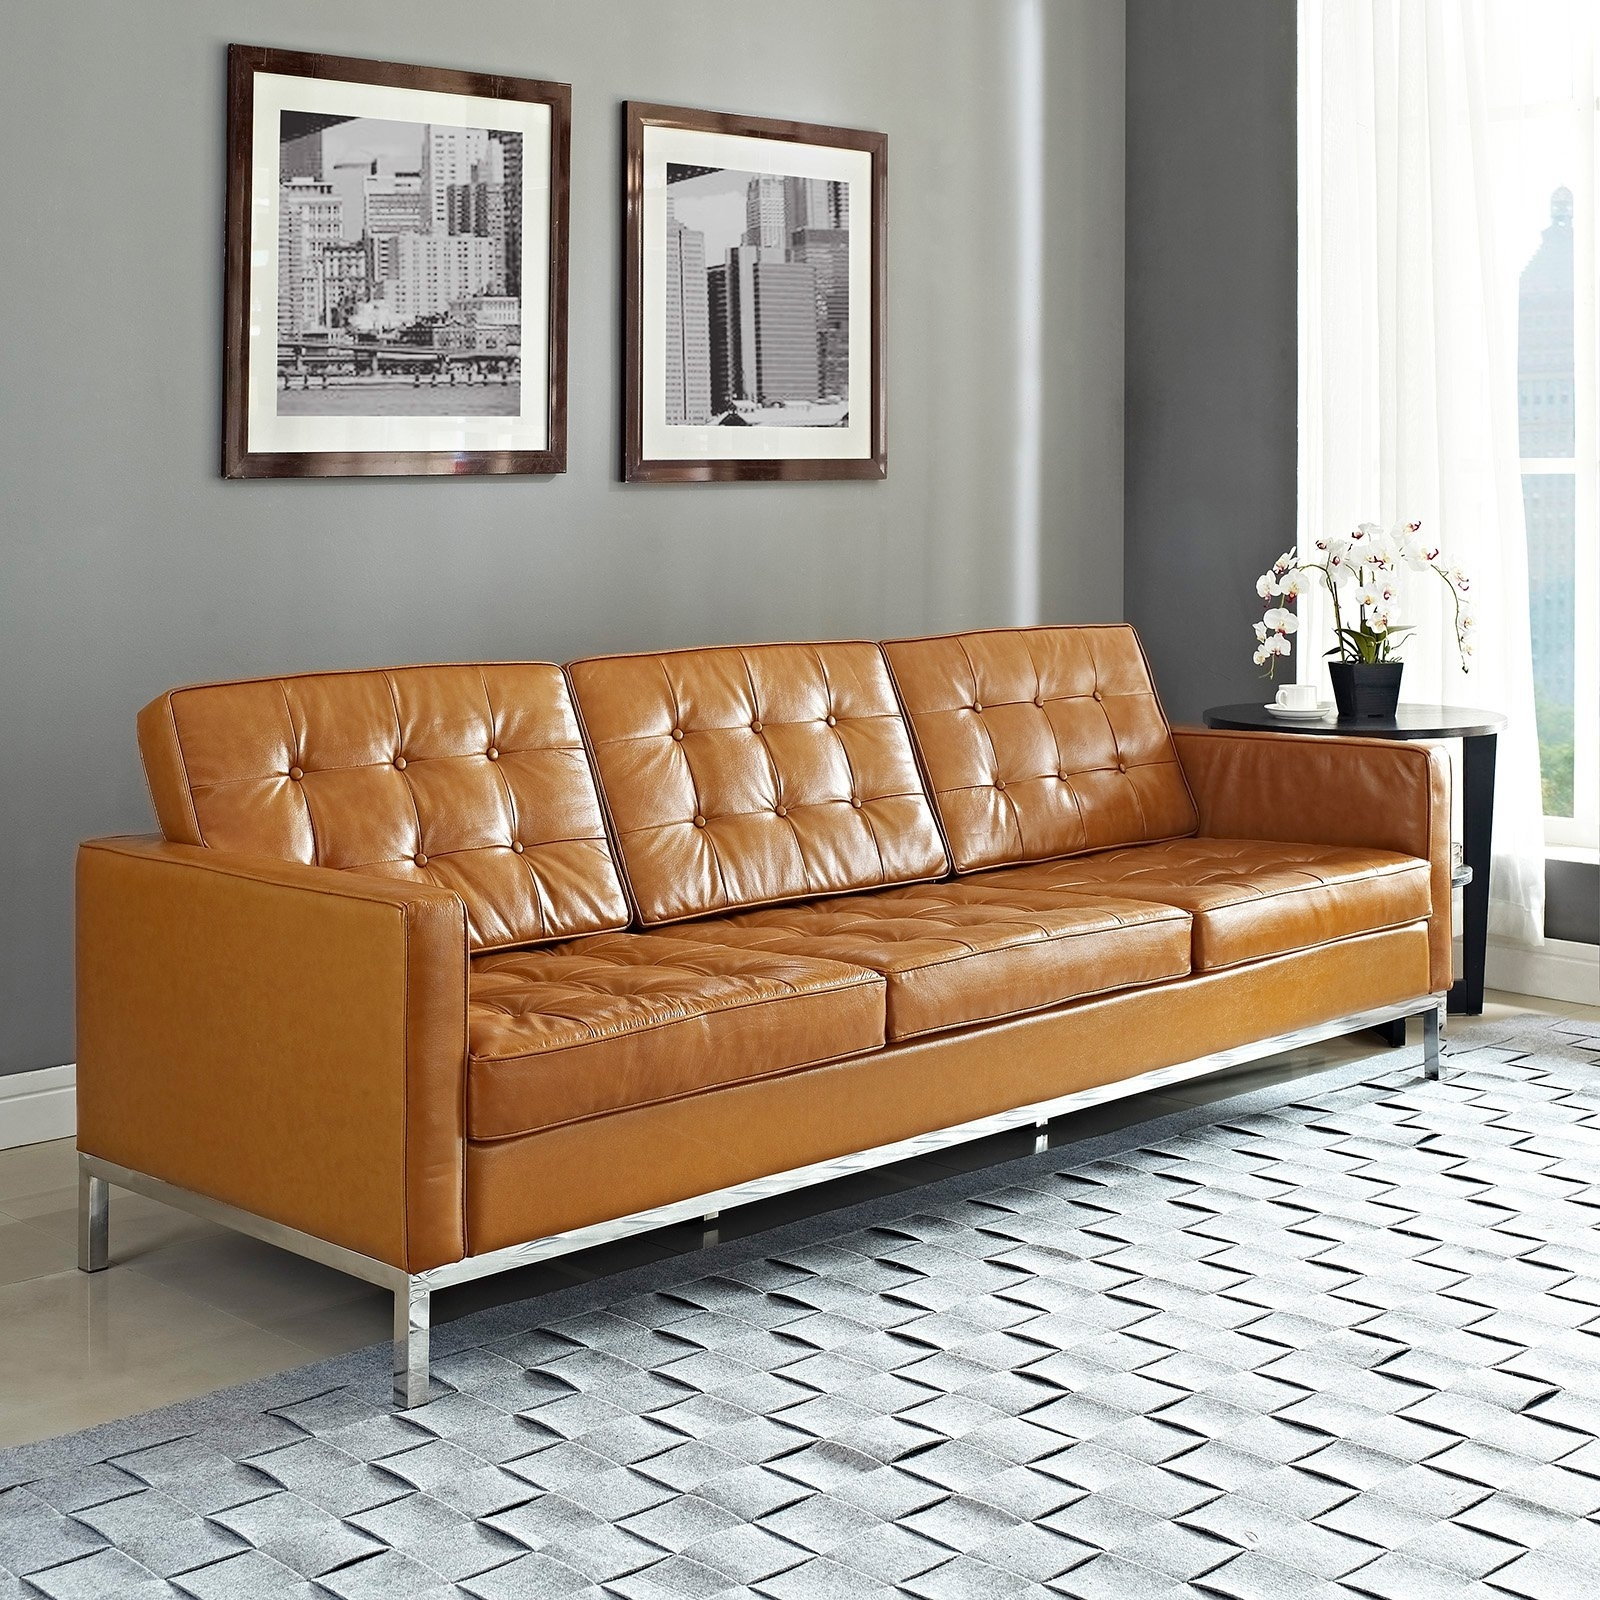 Light Tan Leather Sofas With Regard To 2019 Modway Loft Leather Sofa (View 15 of 20)